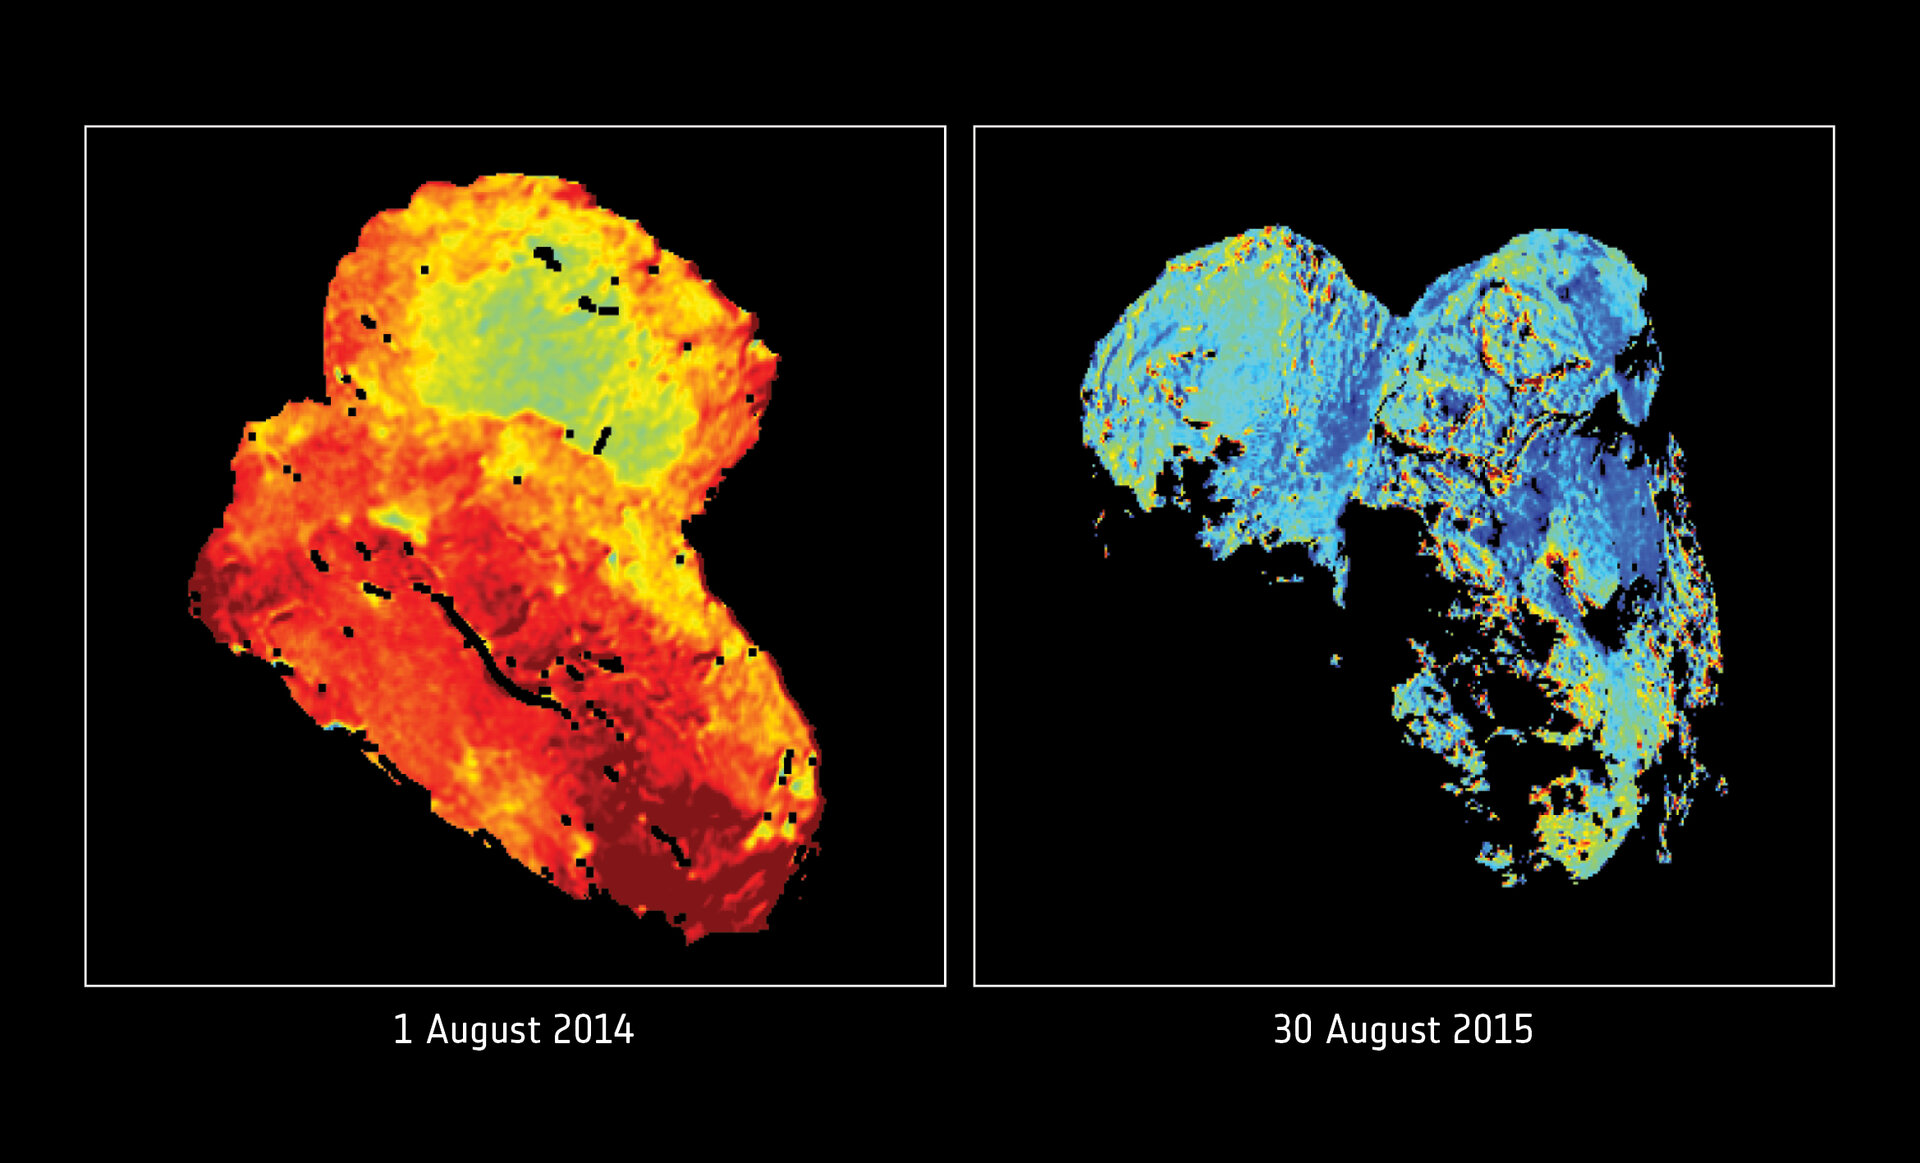 Seasonal cycle of water ice at the comet